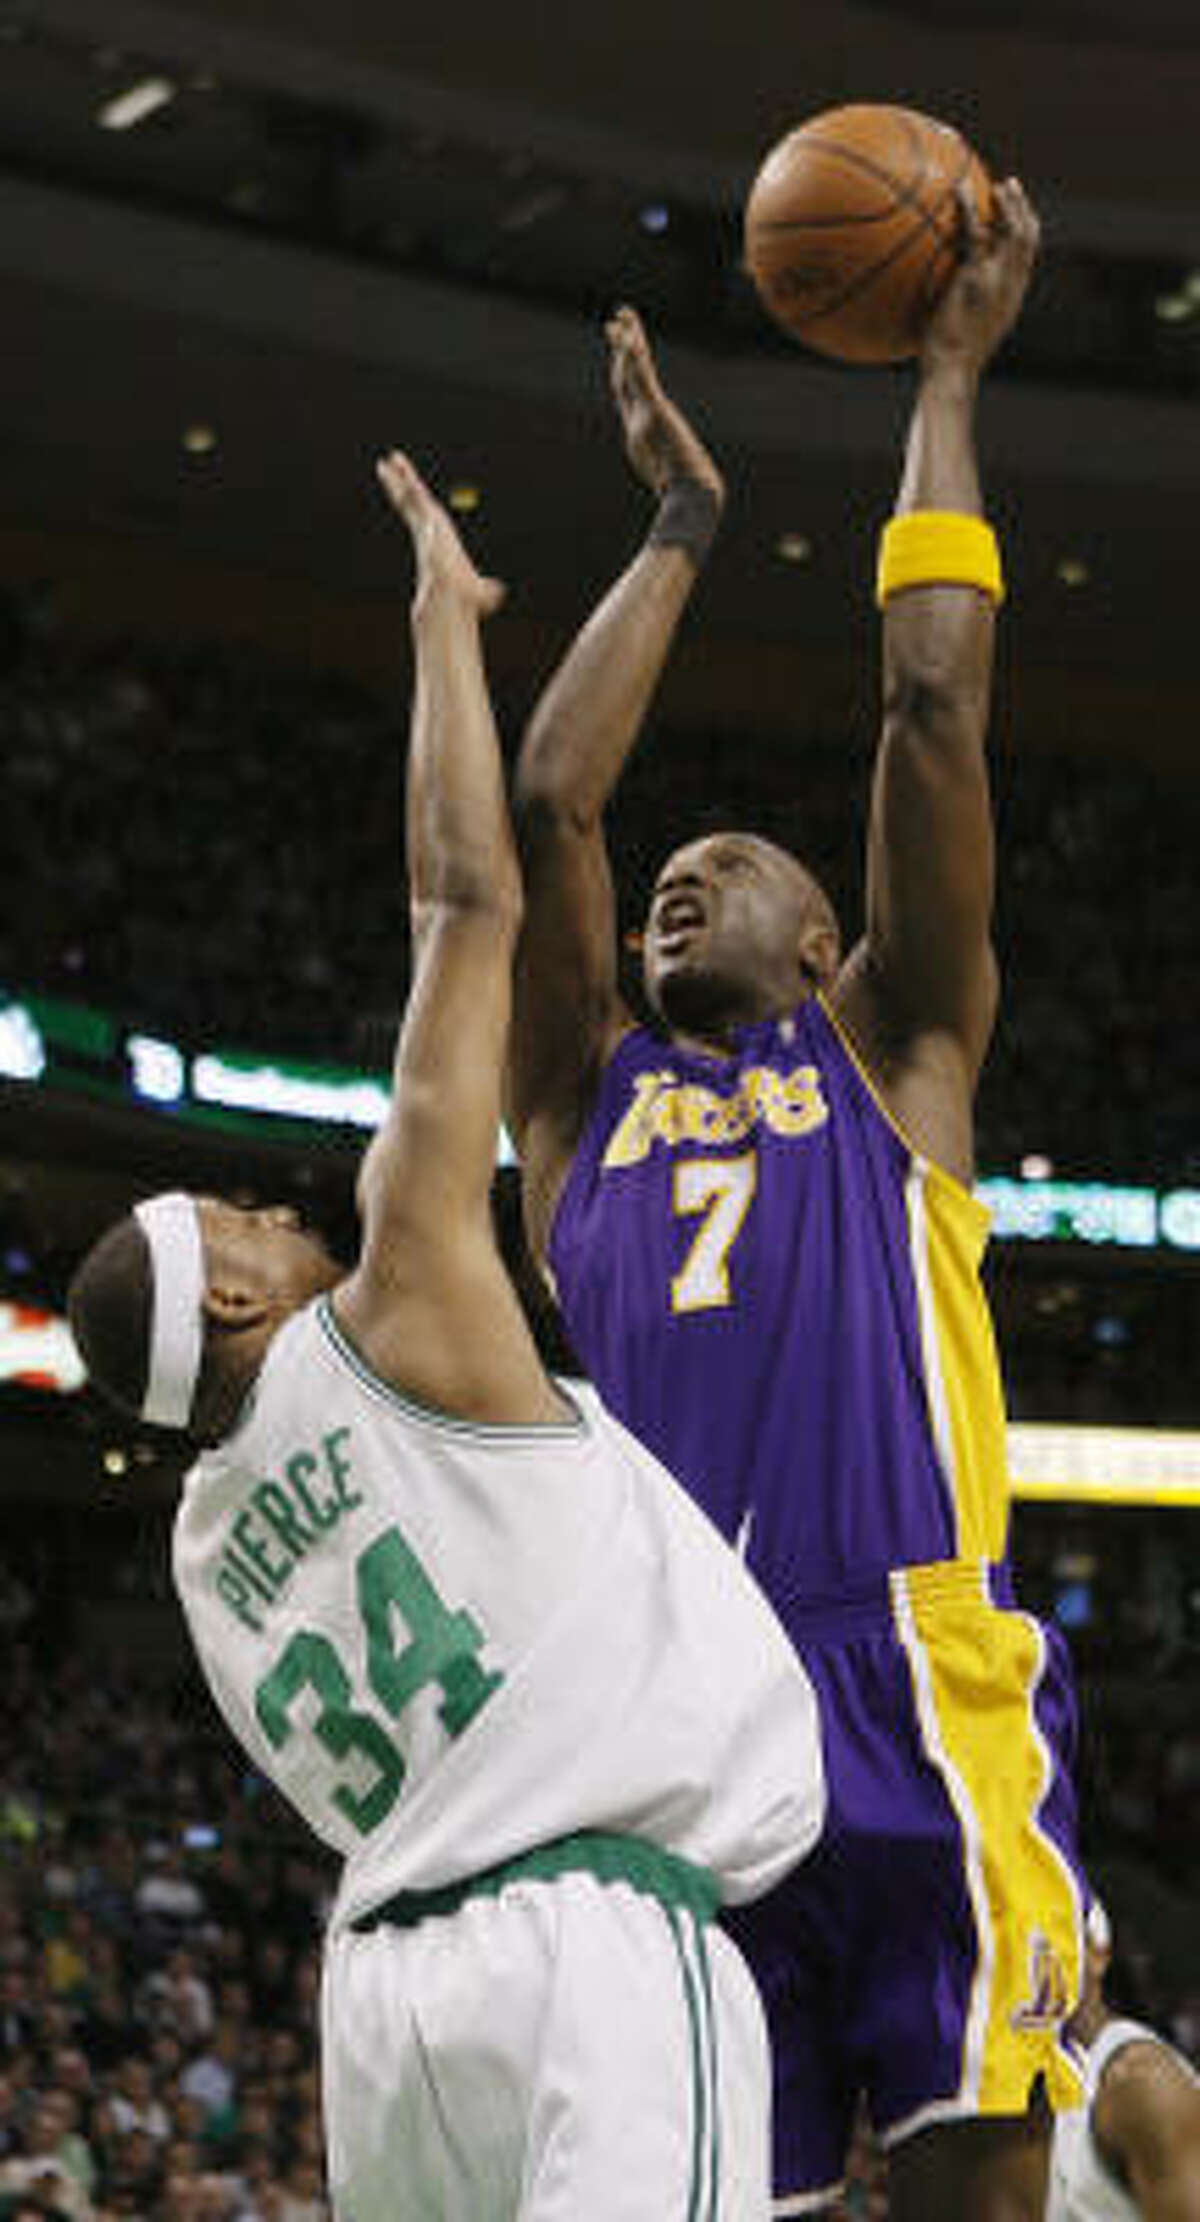 Los Angeles forward Lamar Odom (right) hit two free throws with 16 seconds remaining in overtime to give the Lakers a 110-109 win over Boston on Thursday, snapping the Celtics' 12-game winning streak.